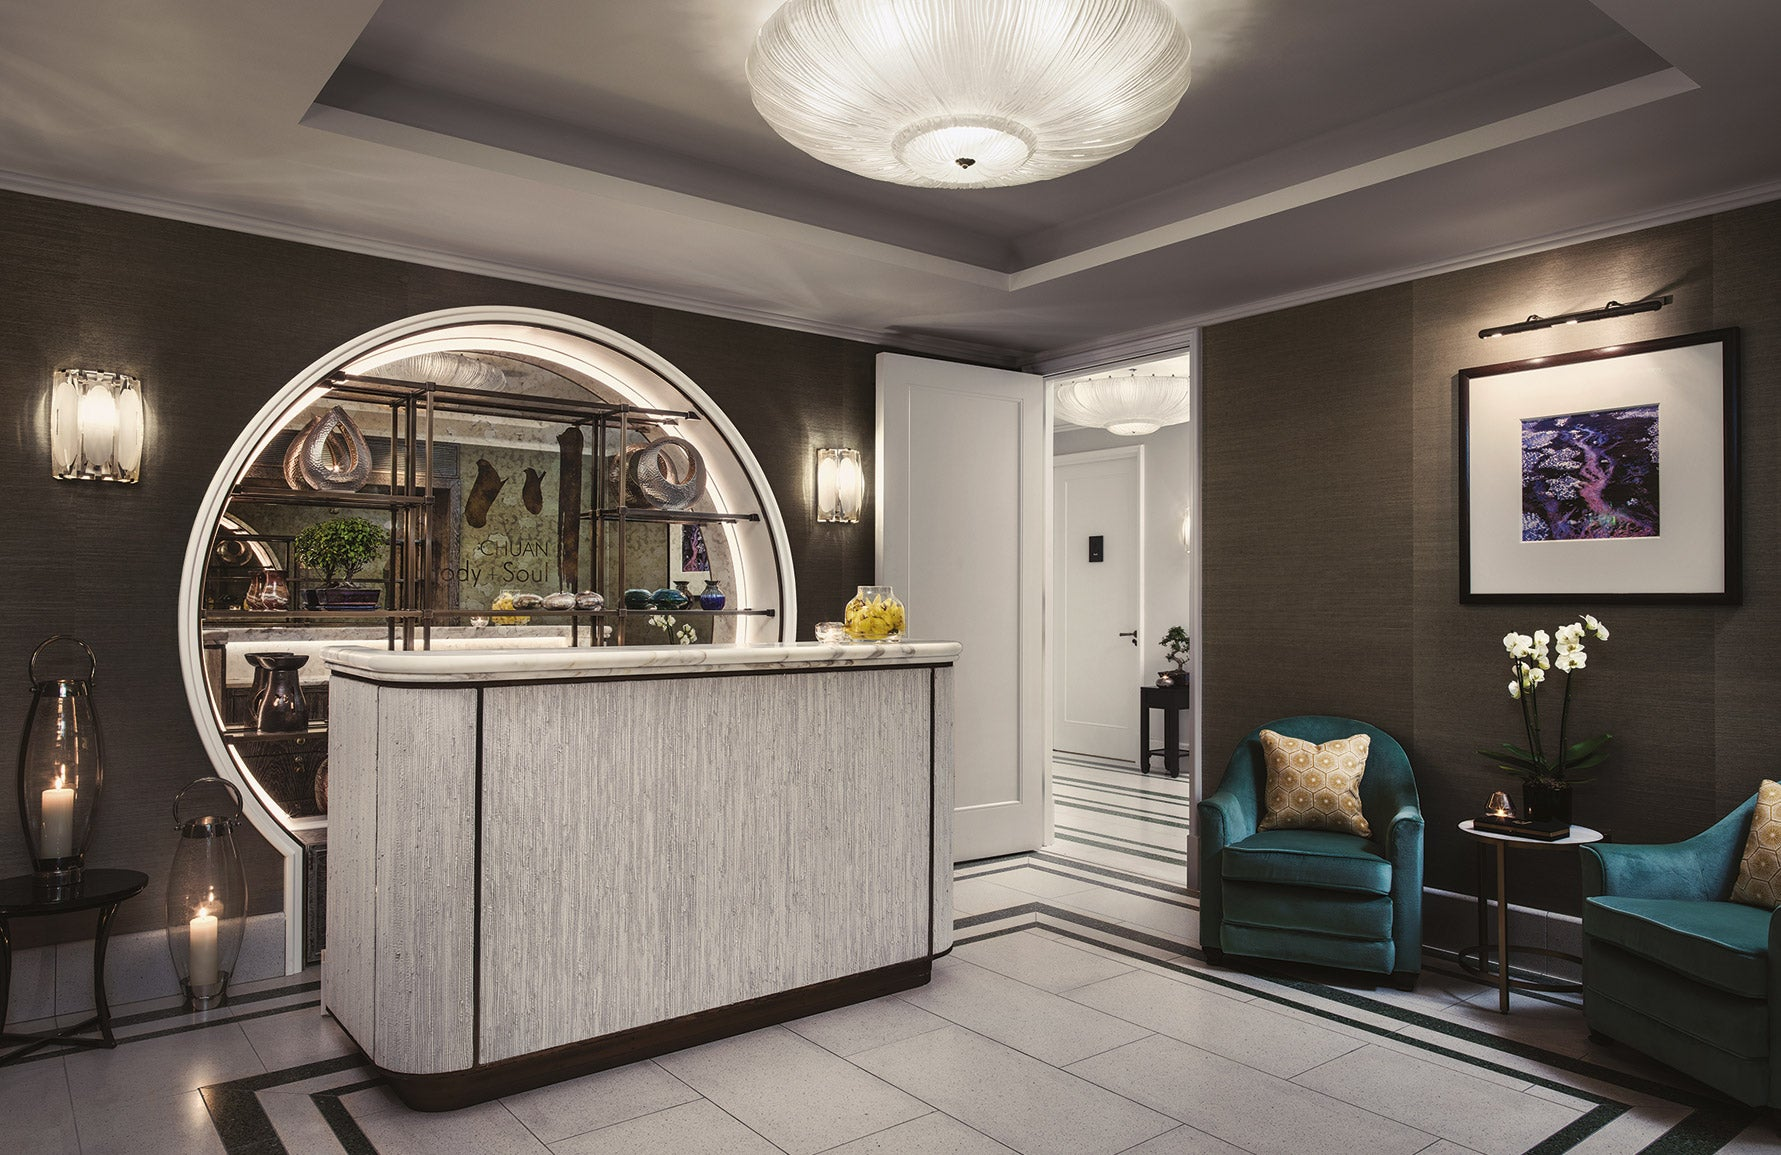 Best Spa In London | Chuan Body + Soul at The Langham | London Spa Hotel | Read more in The Luxurist at LuxDeco.com